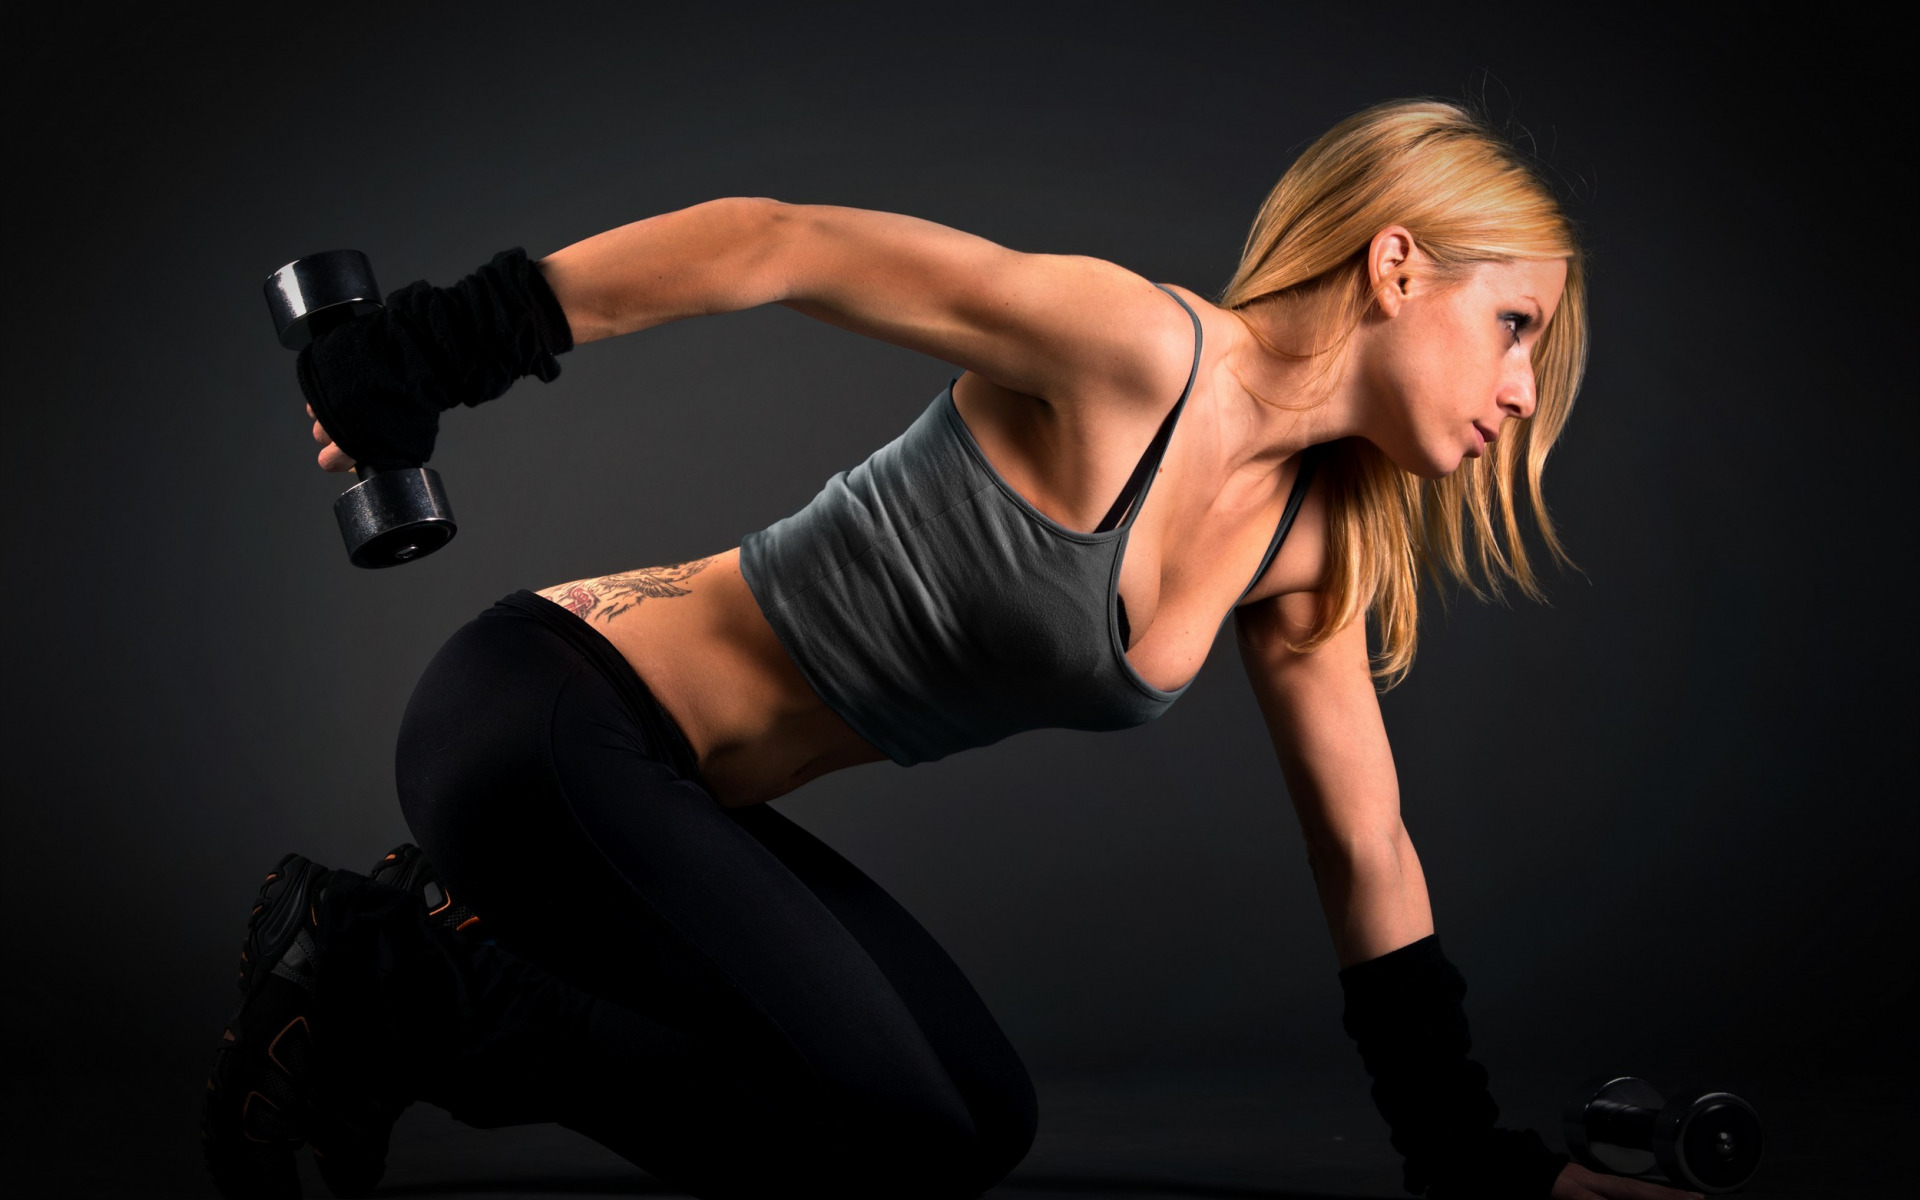 Workout sexy girl